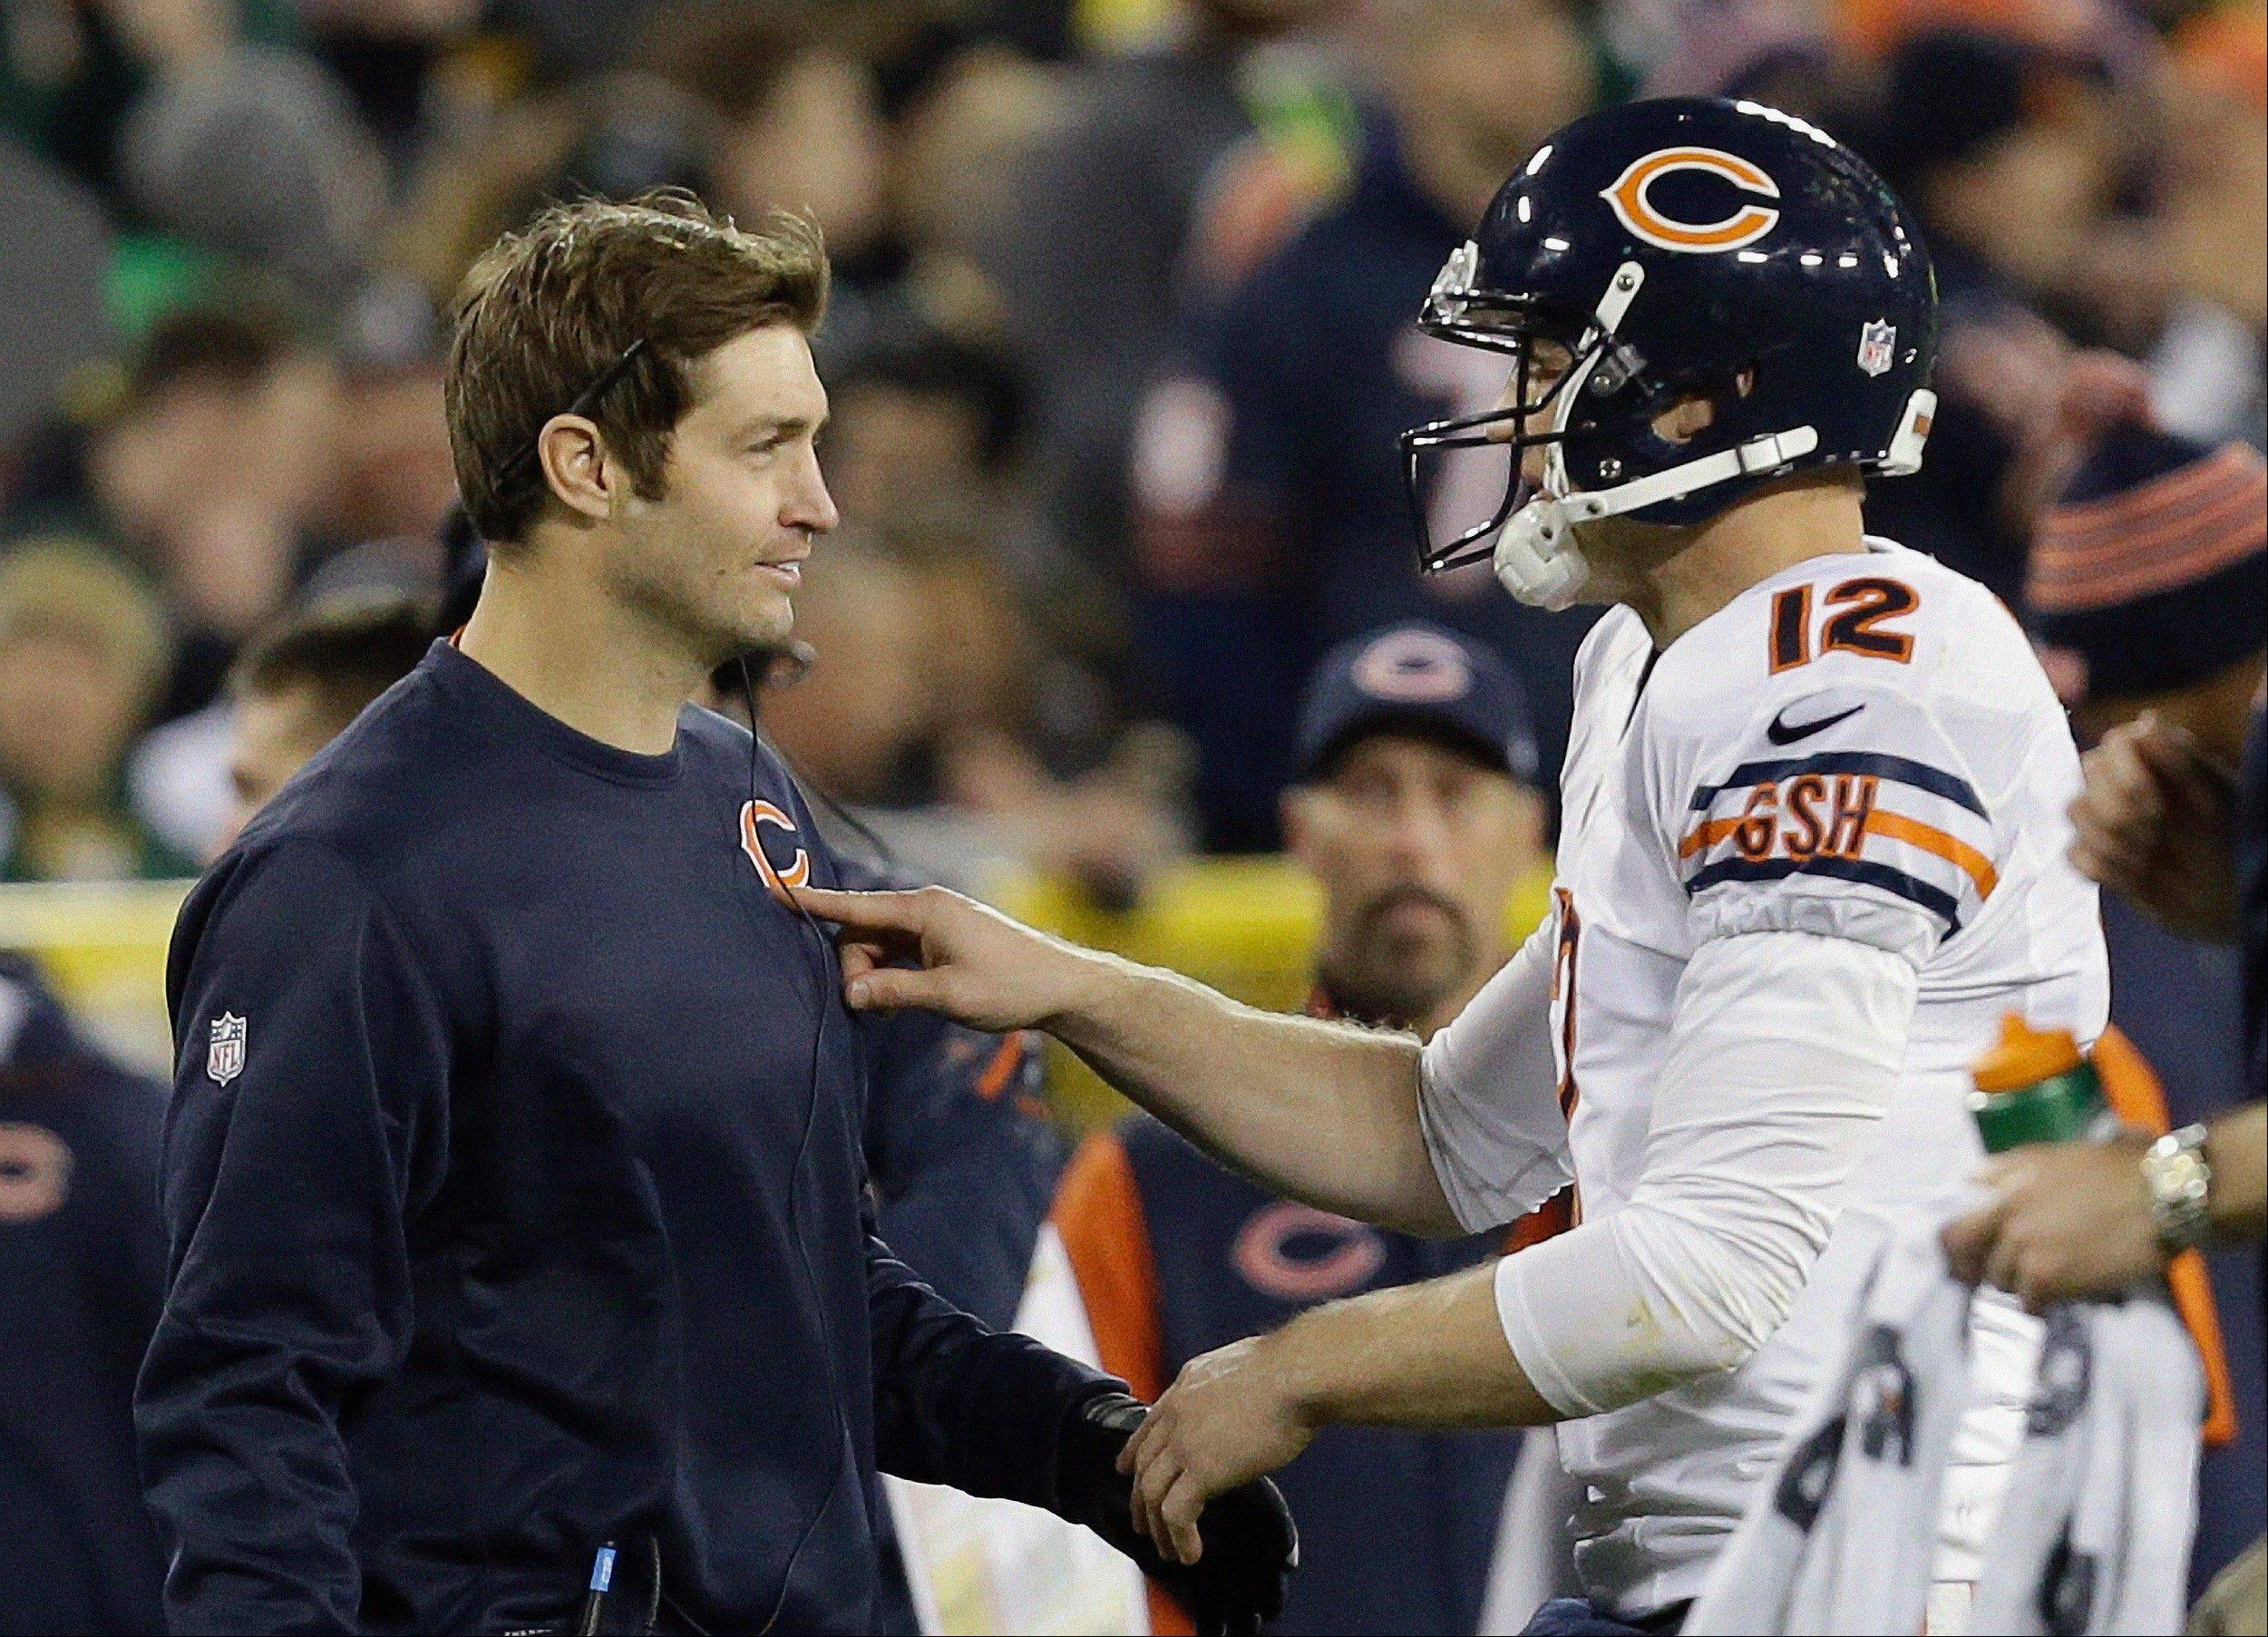 Bears quarterbacks Josh McCown (12) and Jay Cutler chat during Monday�s 27-20 win over the Packers.